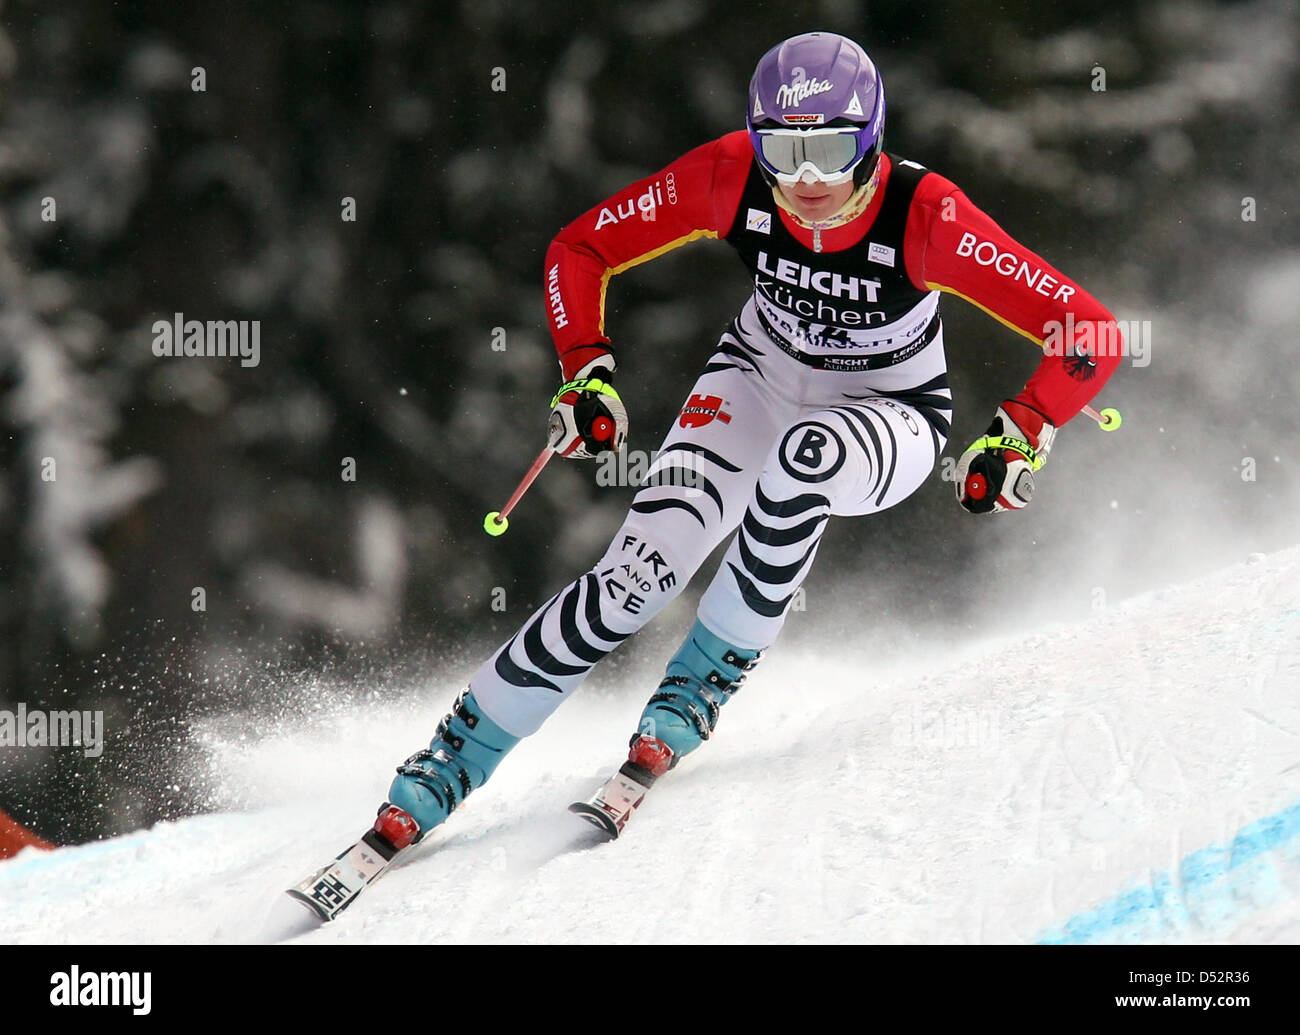 German Maria Riesch pictured during the downhill training for the final of the Skiing World Cup 2010 at the Kandahar - Stock Image